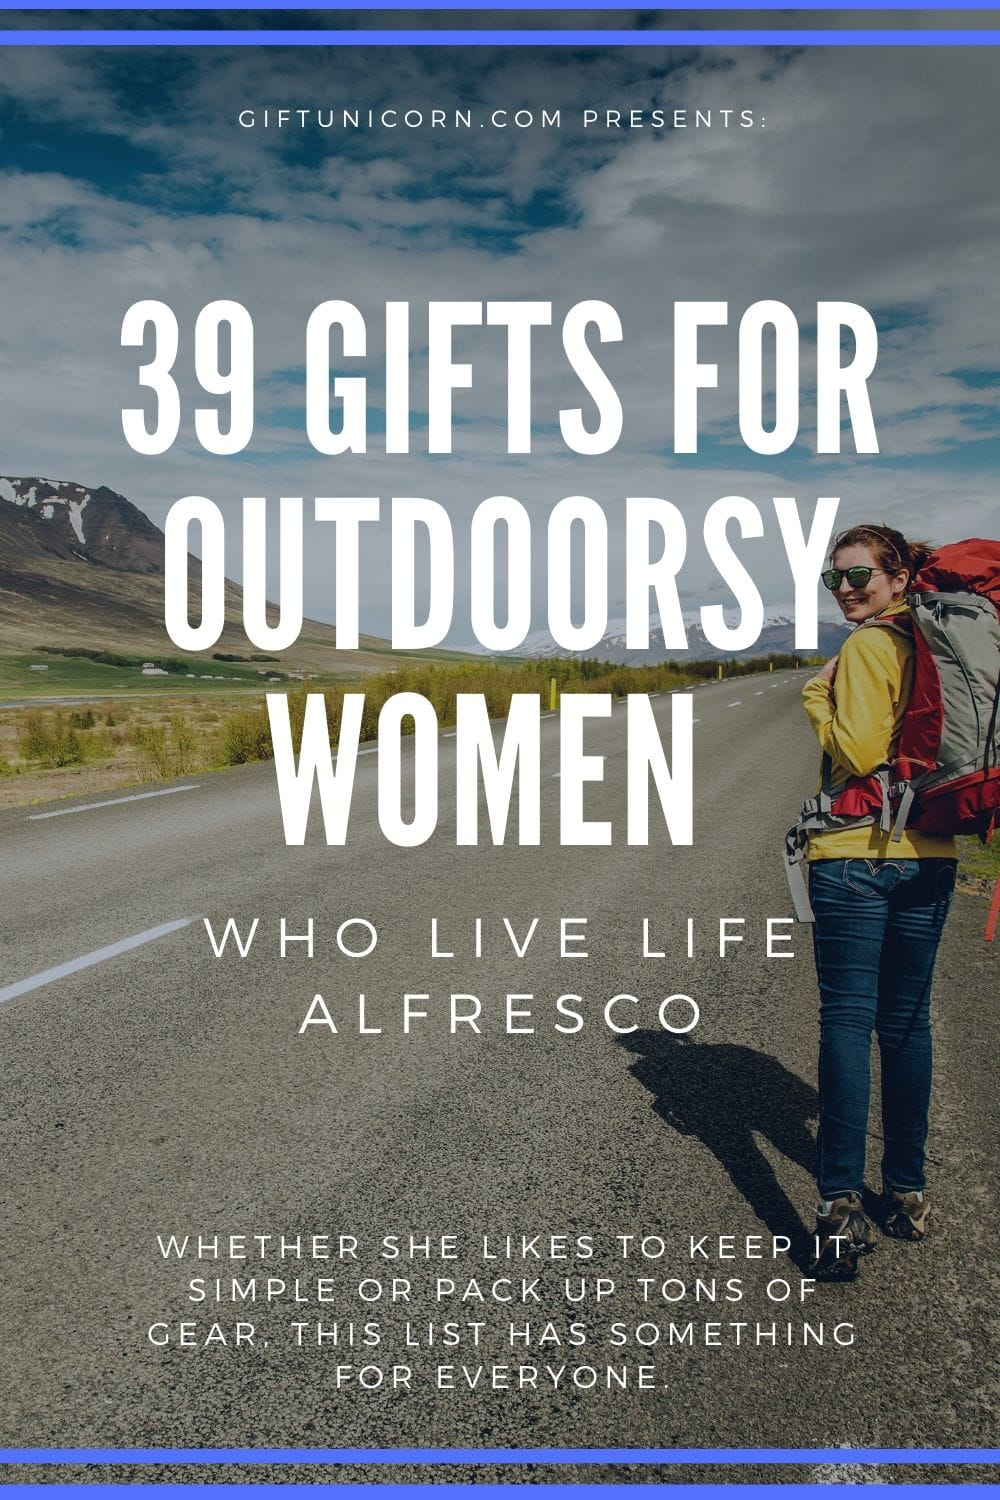 39 gifts for outdoorsy women pinterest pin image